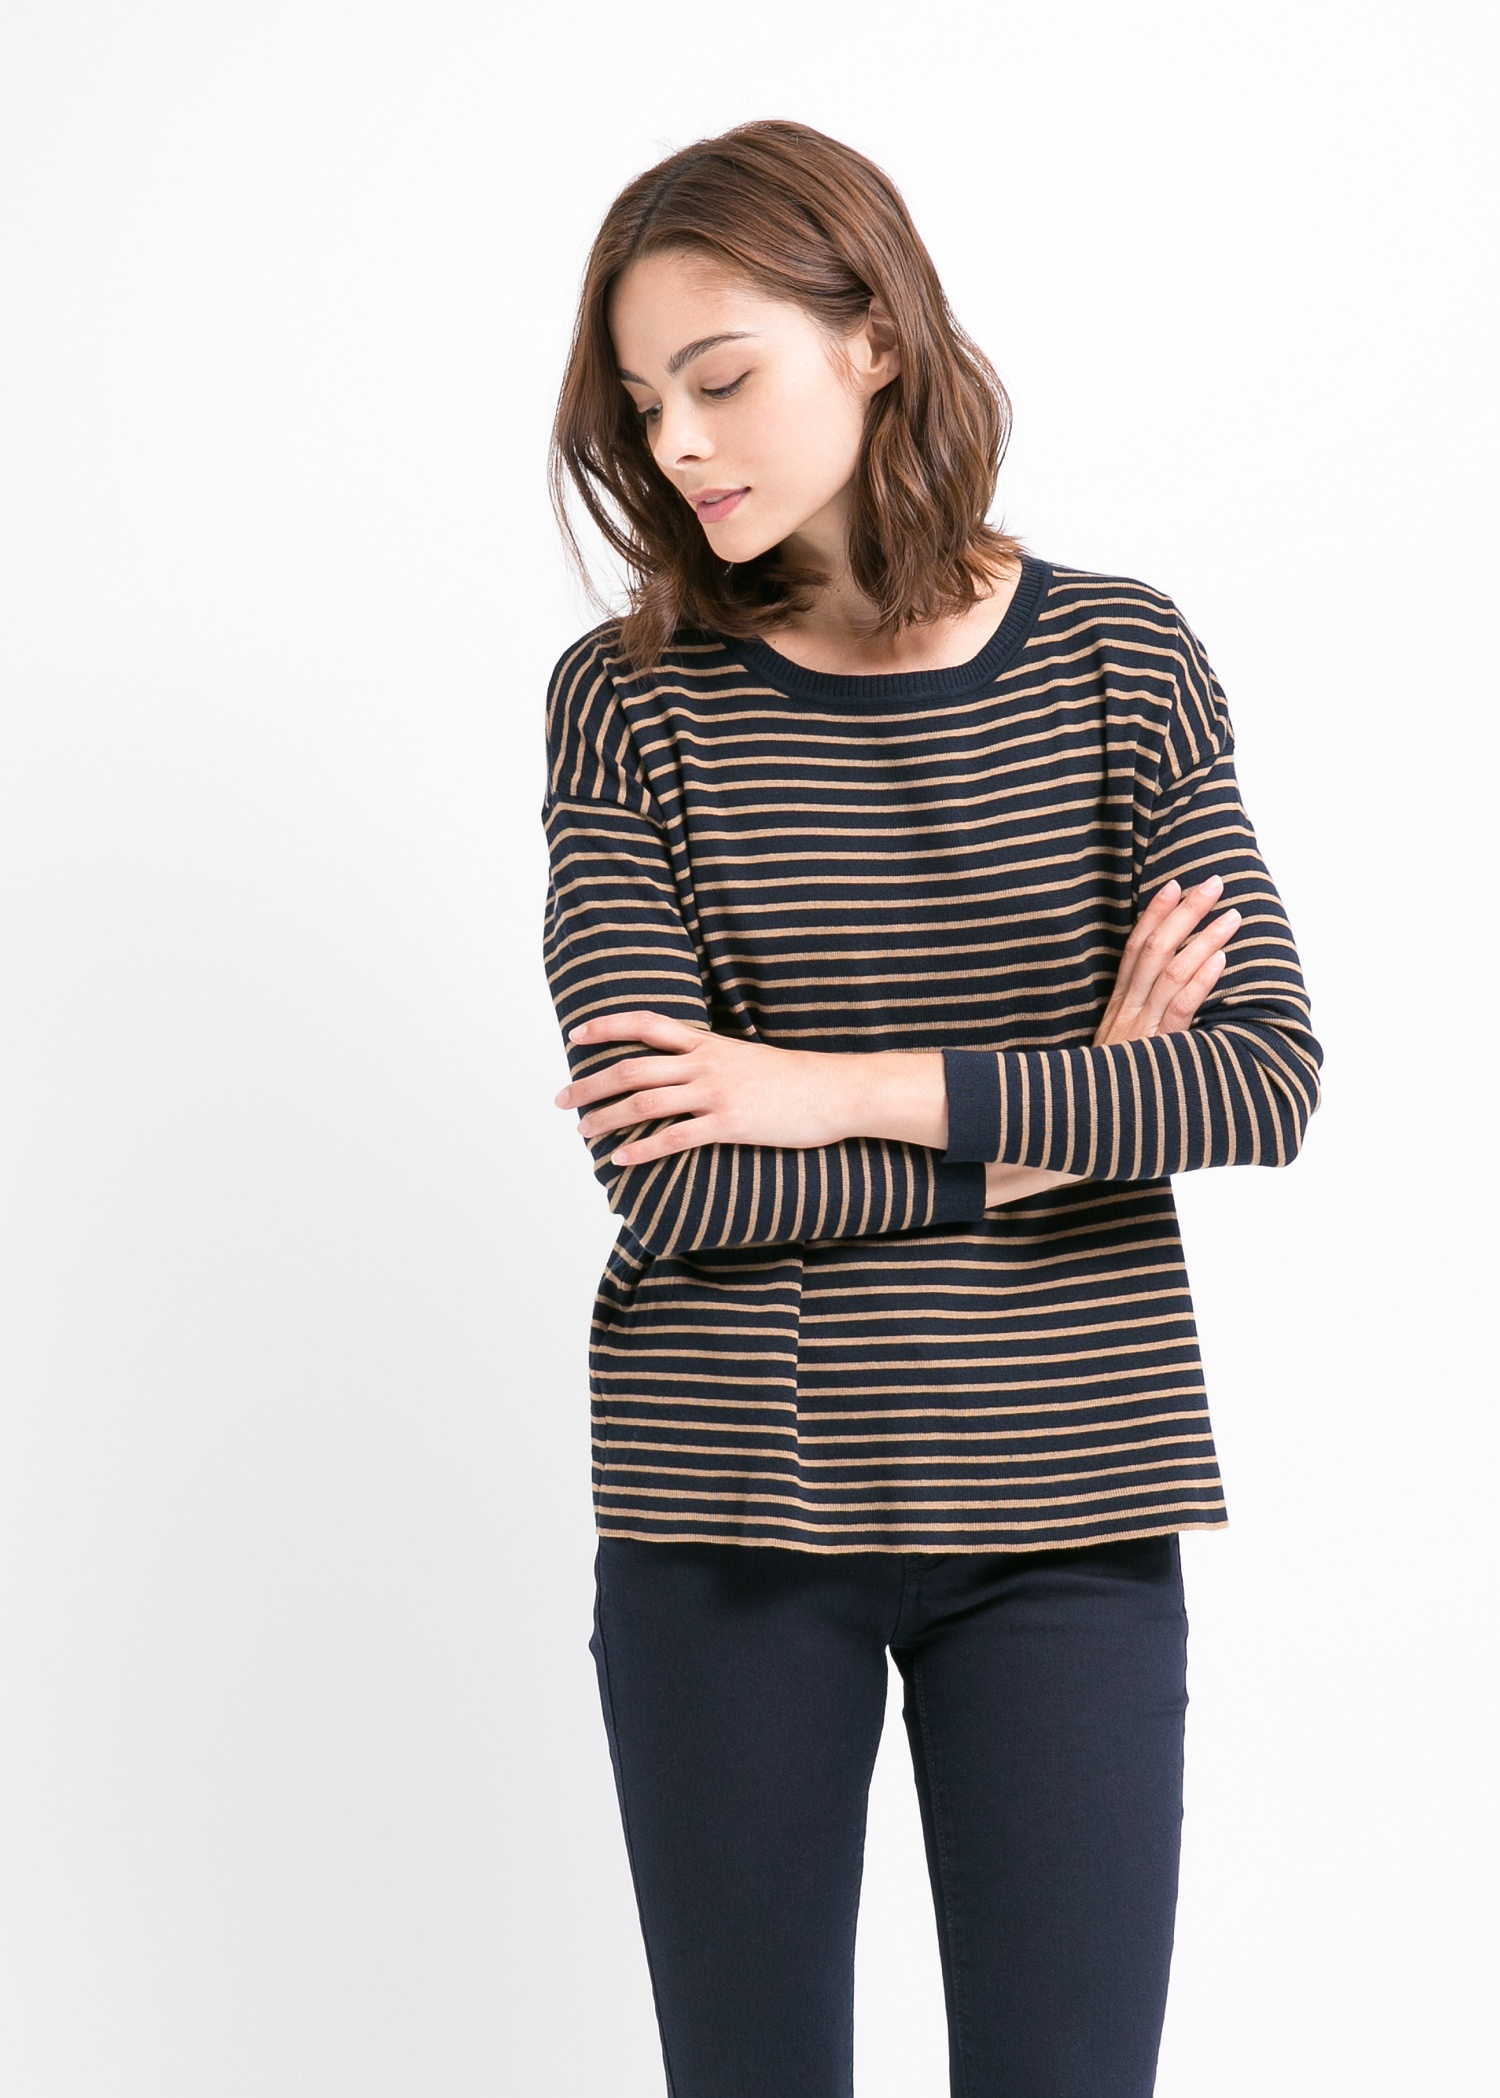 Round-neck striped sweater - Cardigans and sweaters for Women | MANGO